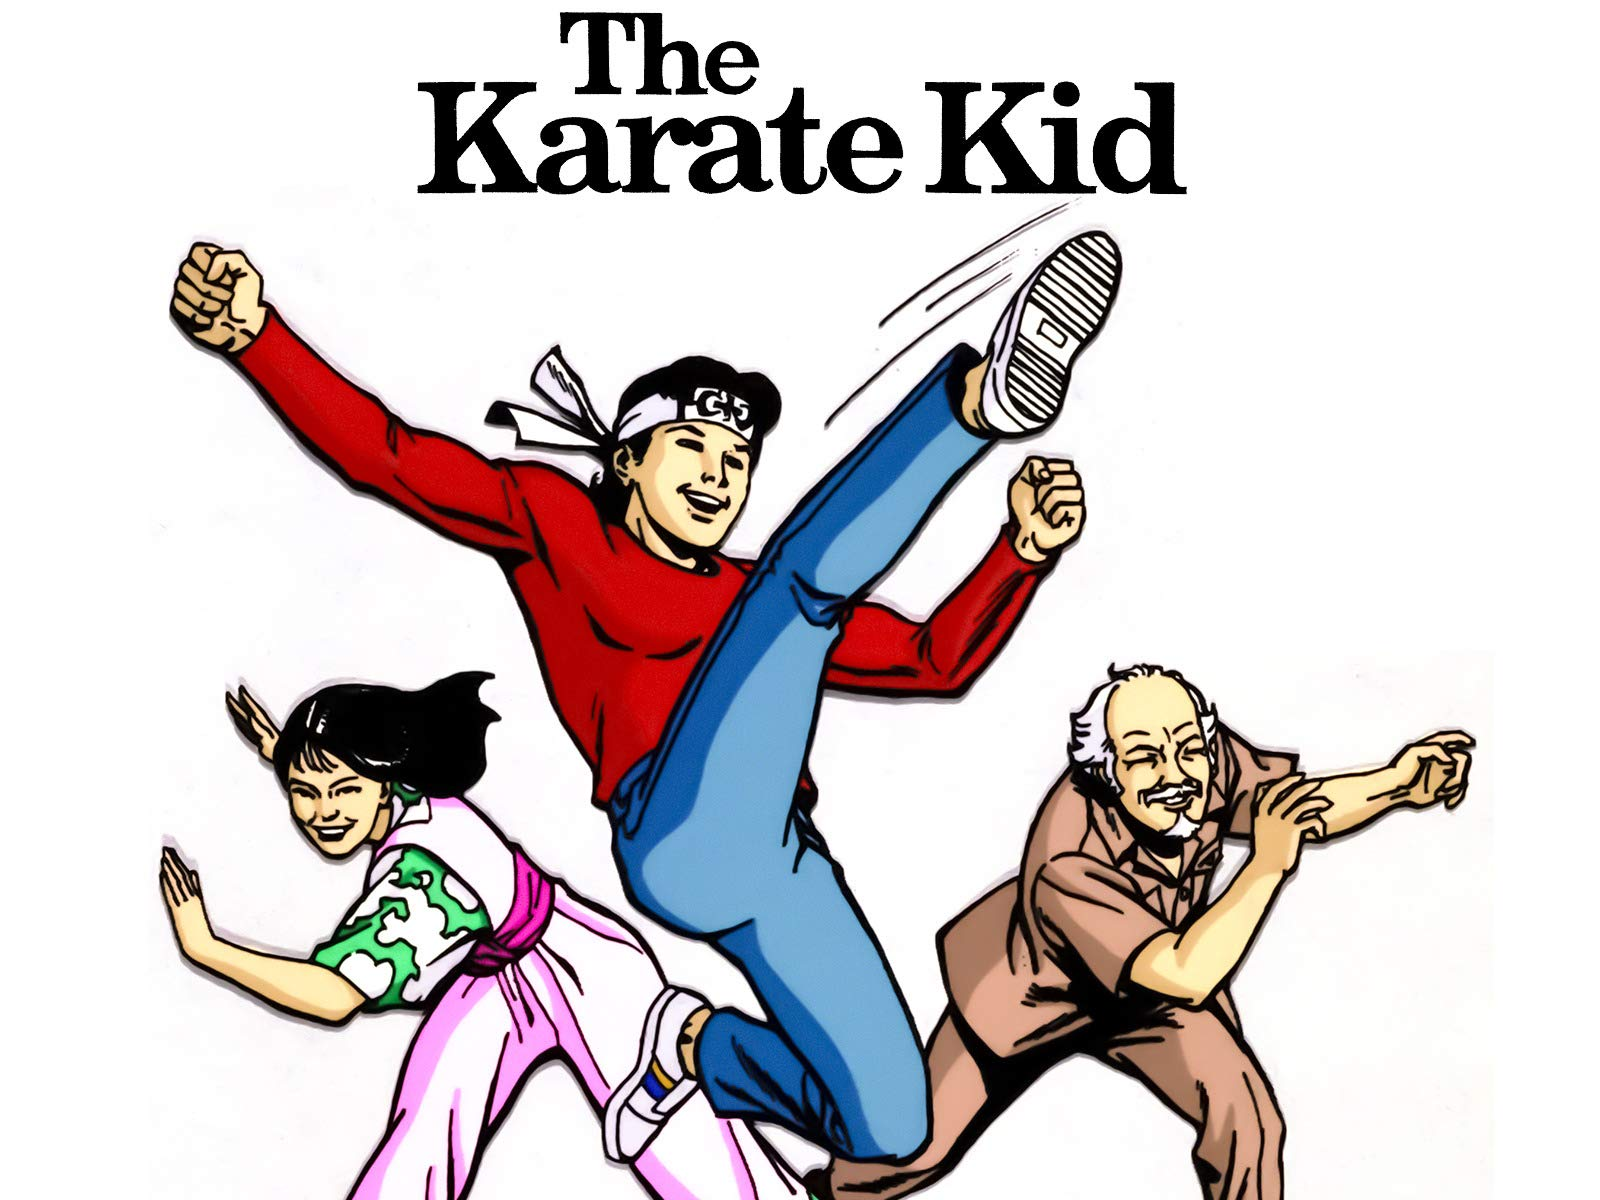 Watch Karate Kid The Animated Prime Video